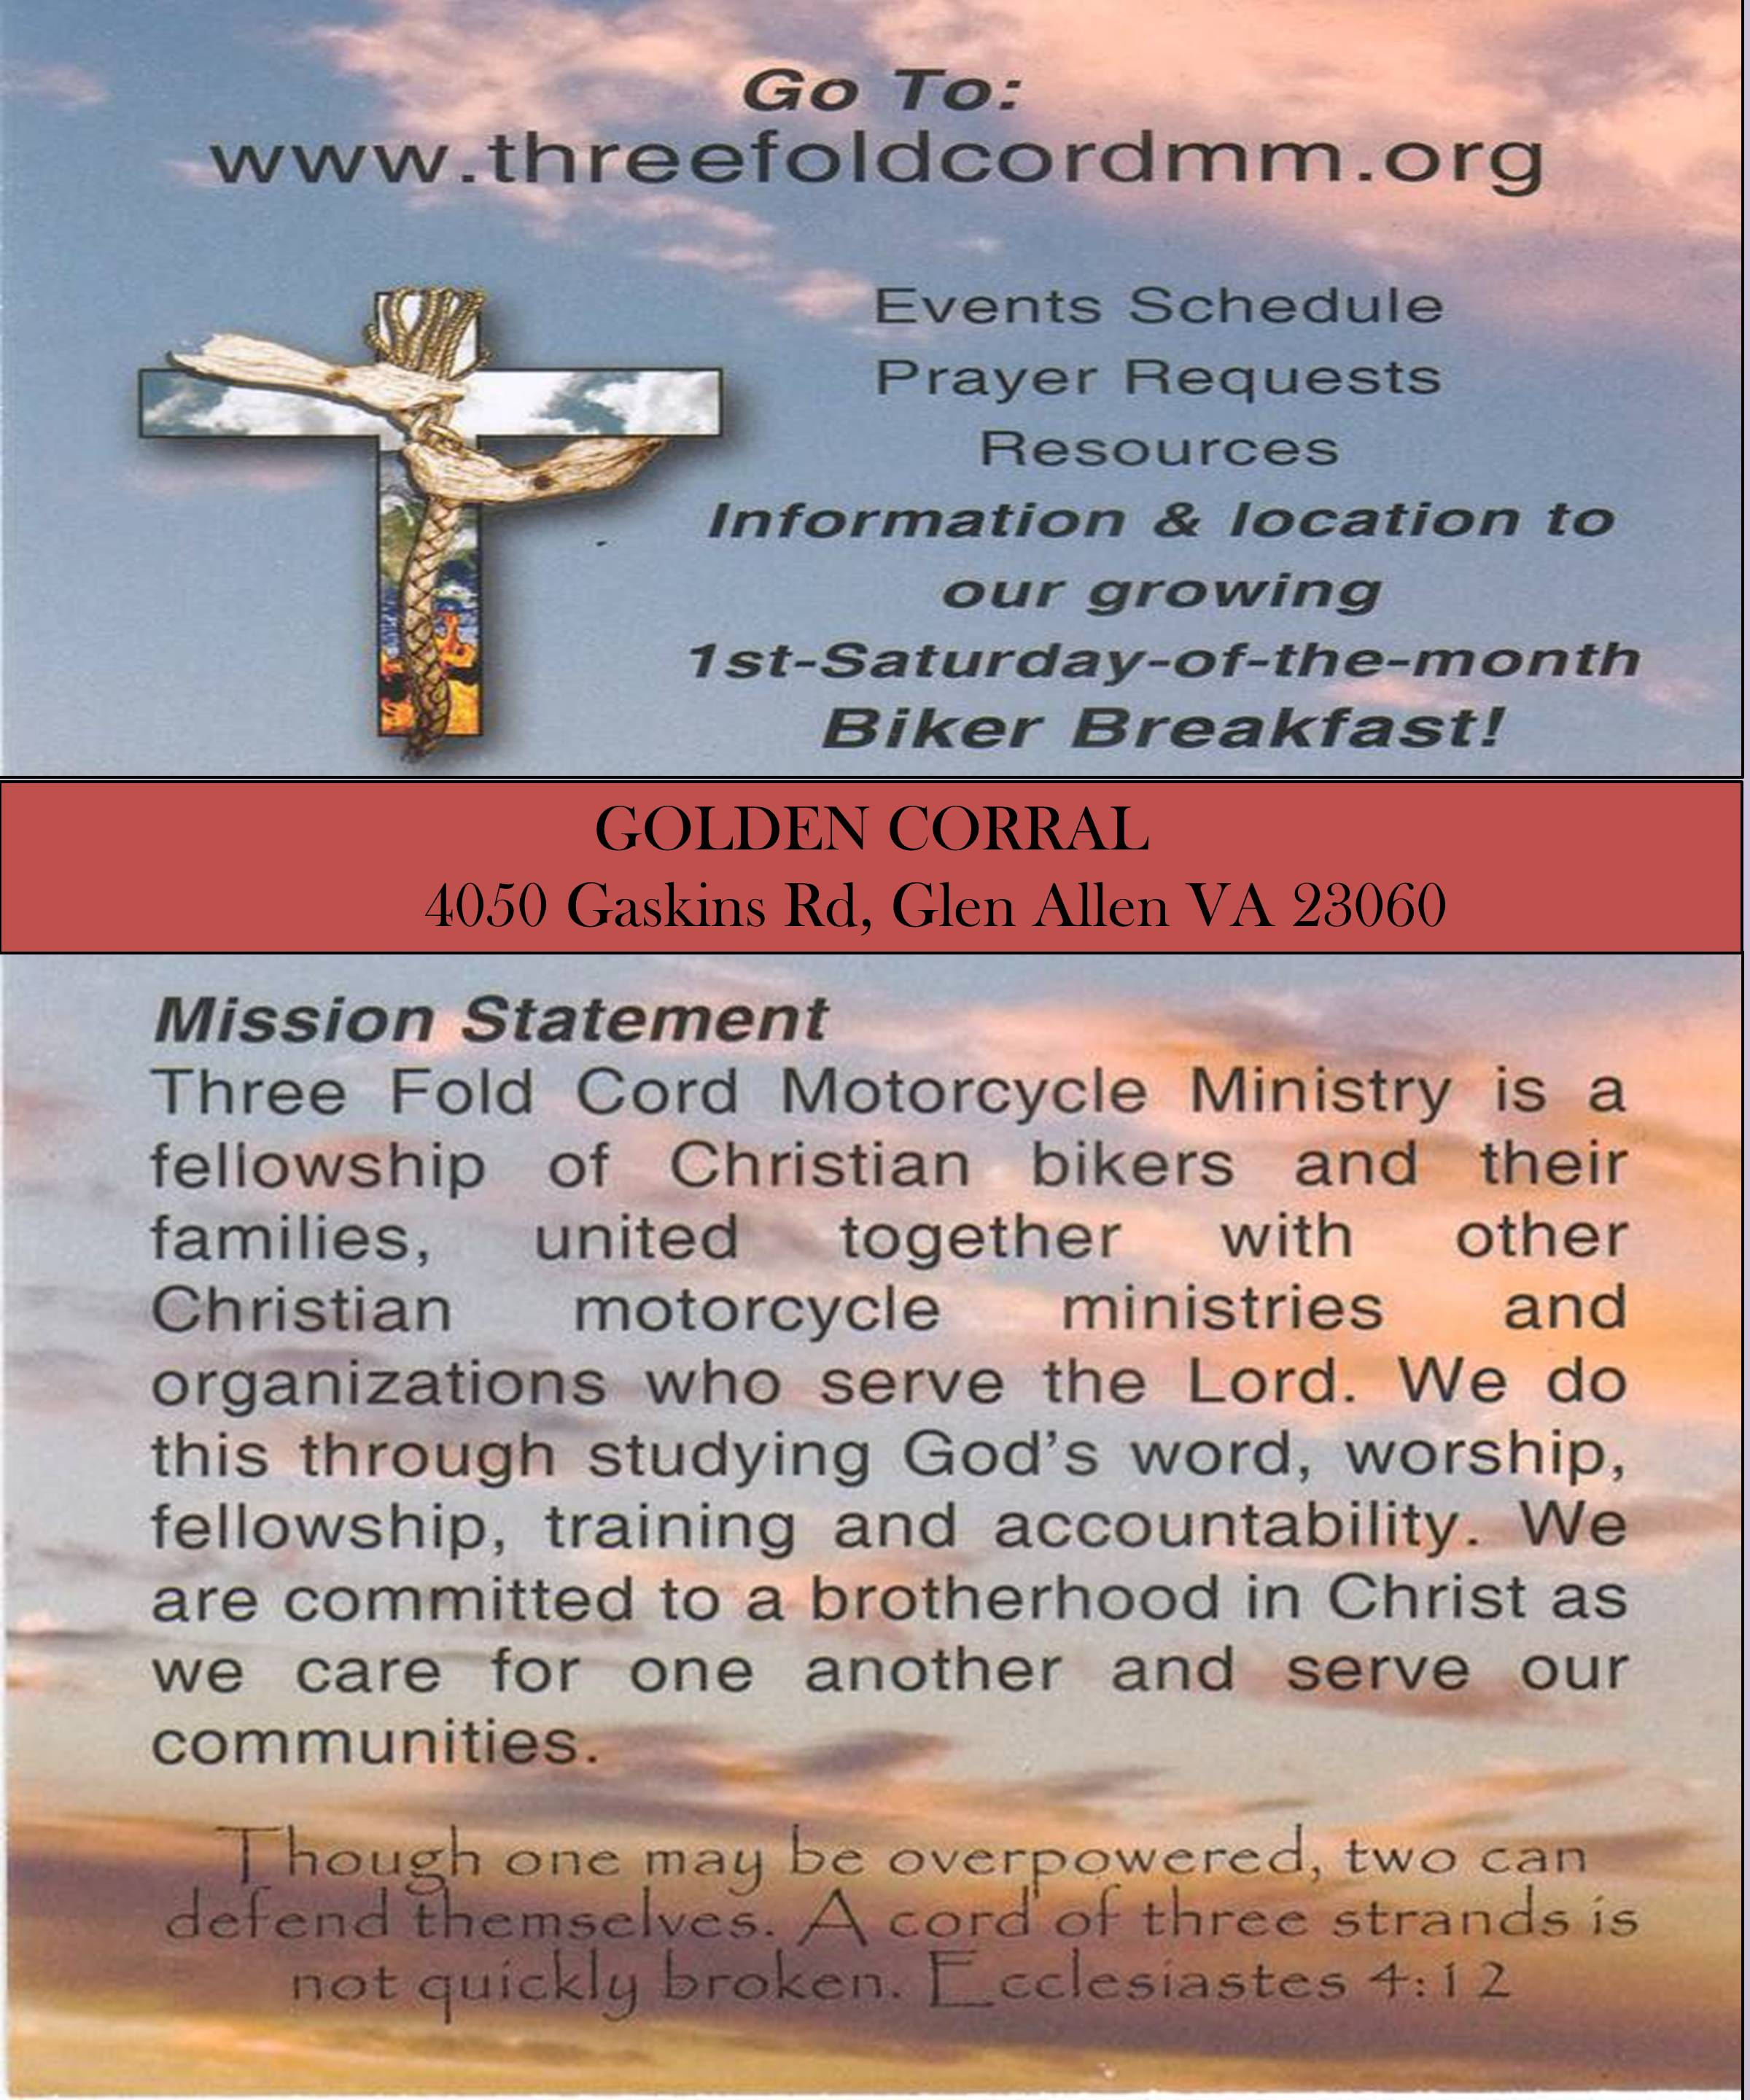 TFC BREAKFAST FLYER